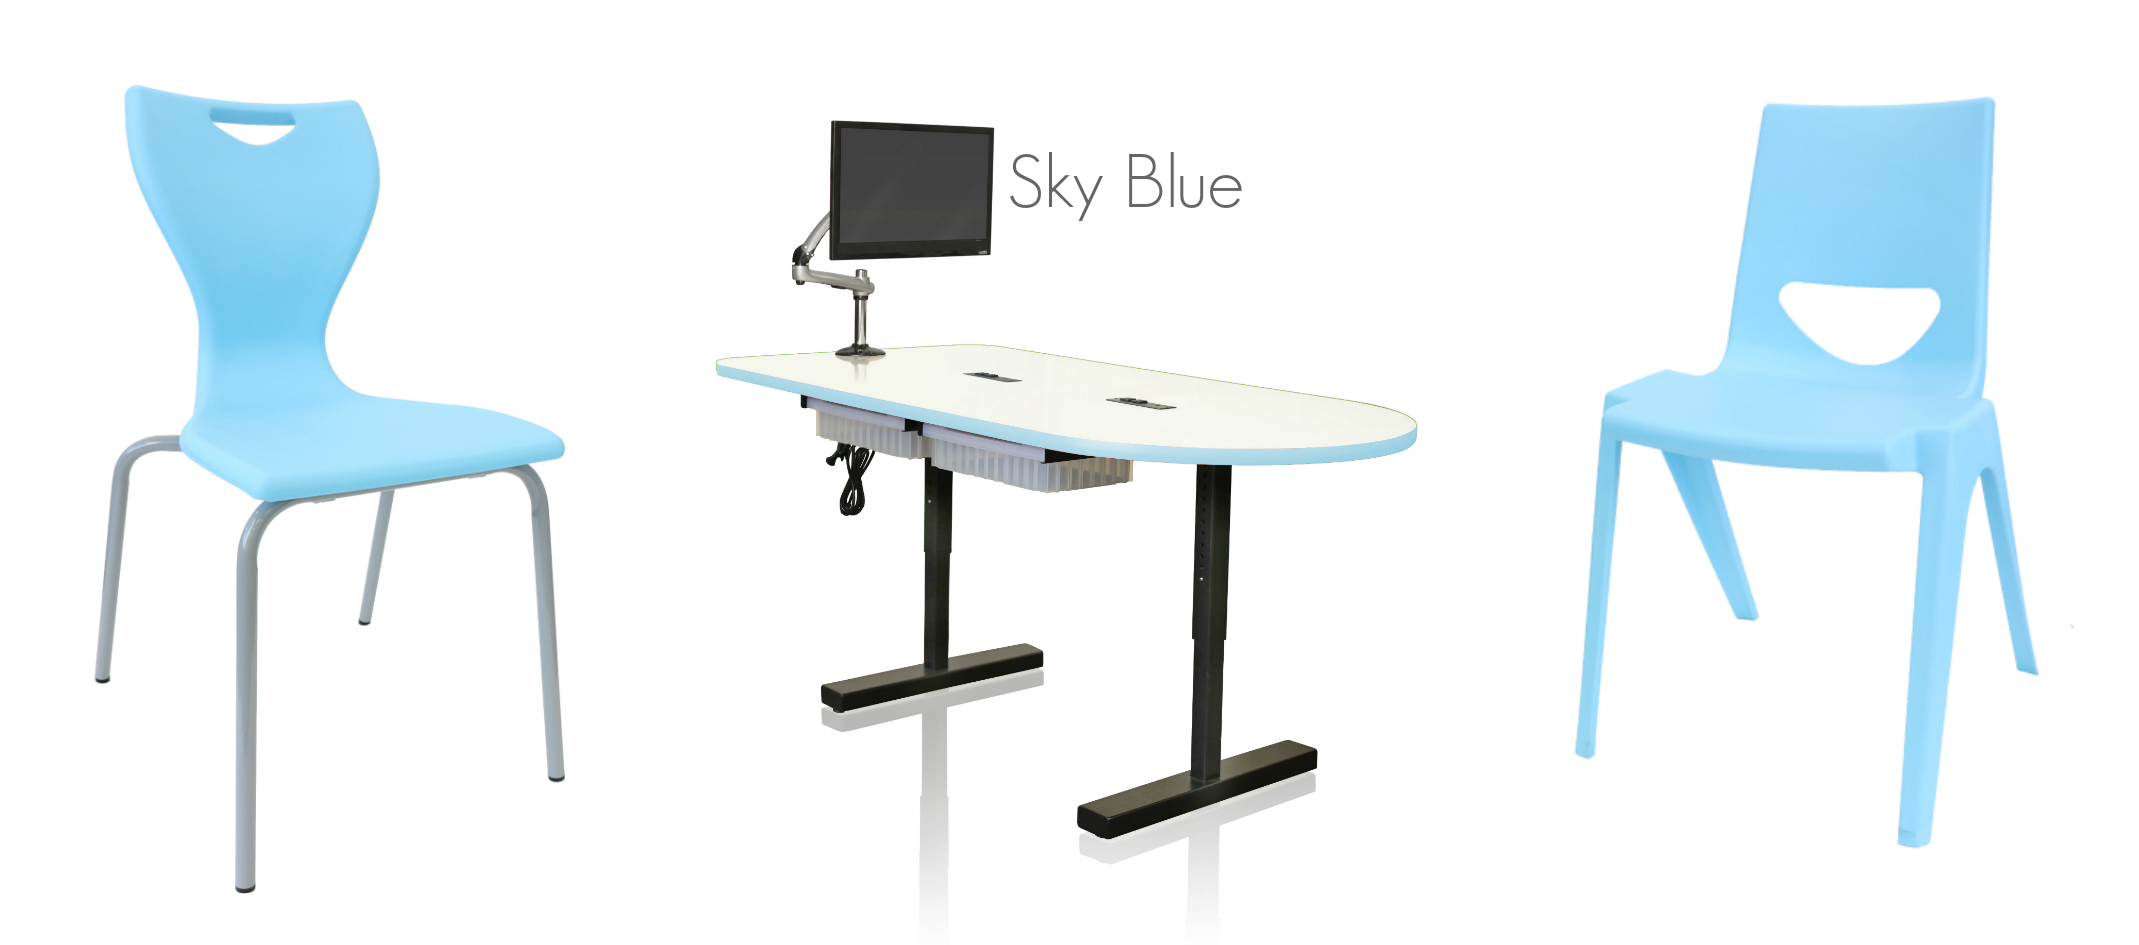 CEF Sky Blue Table and Chairs with name.jpg